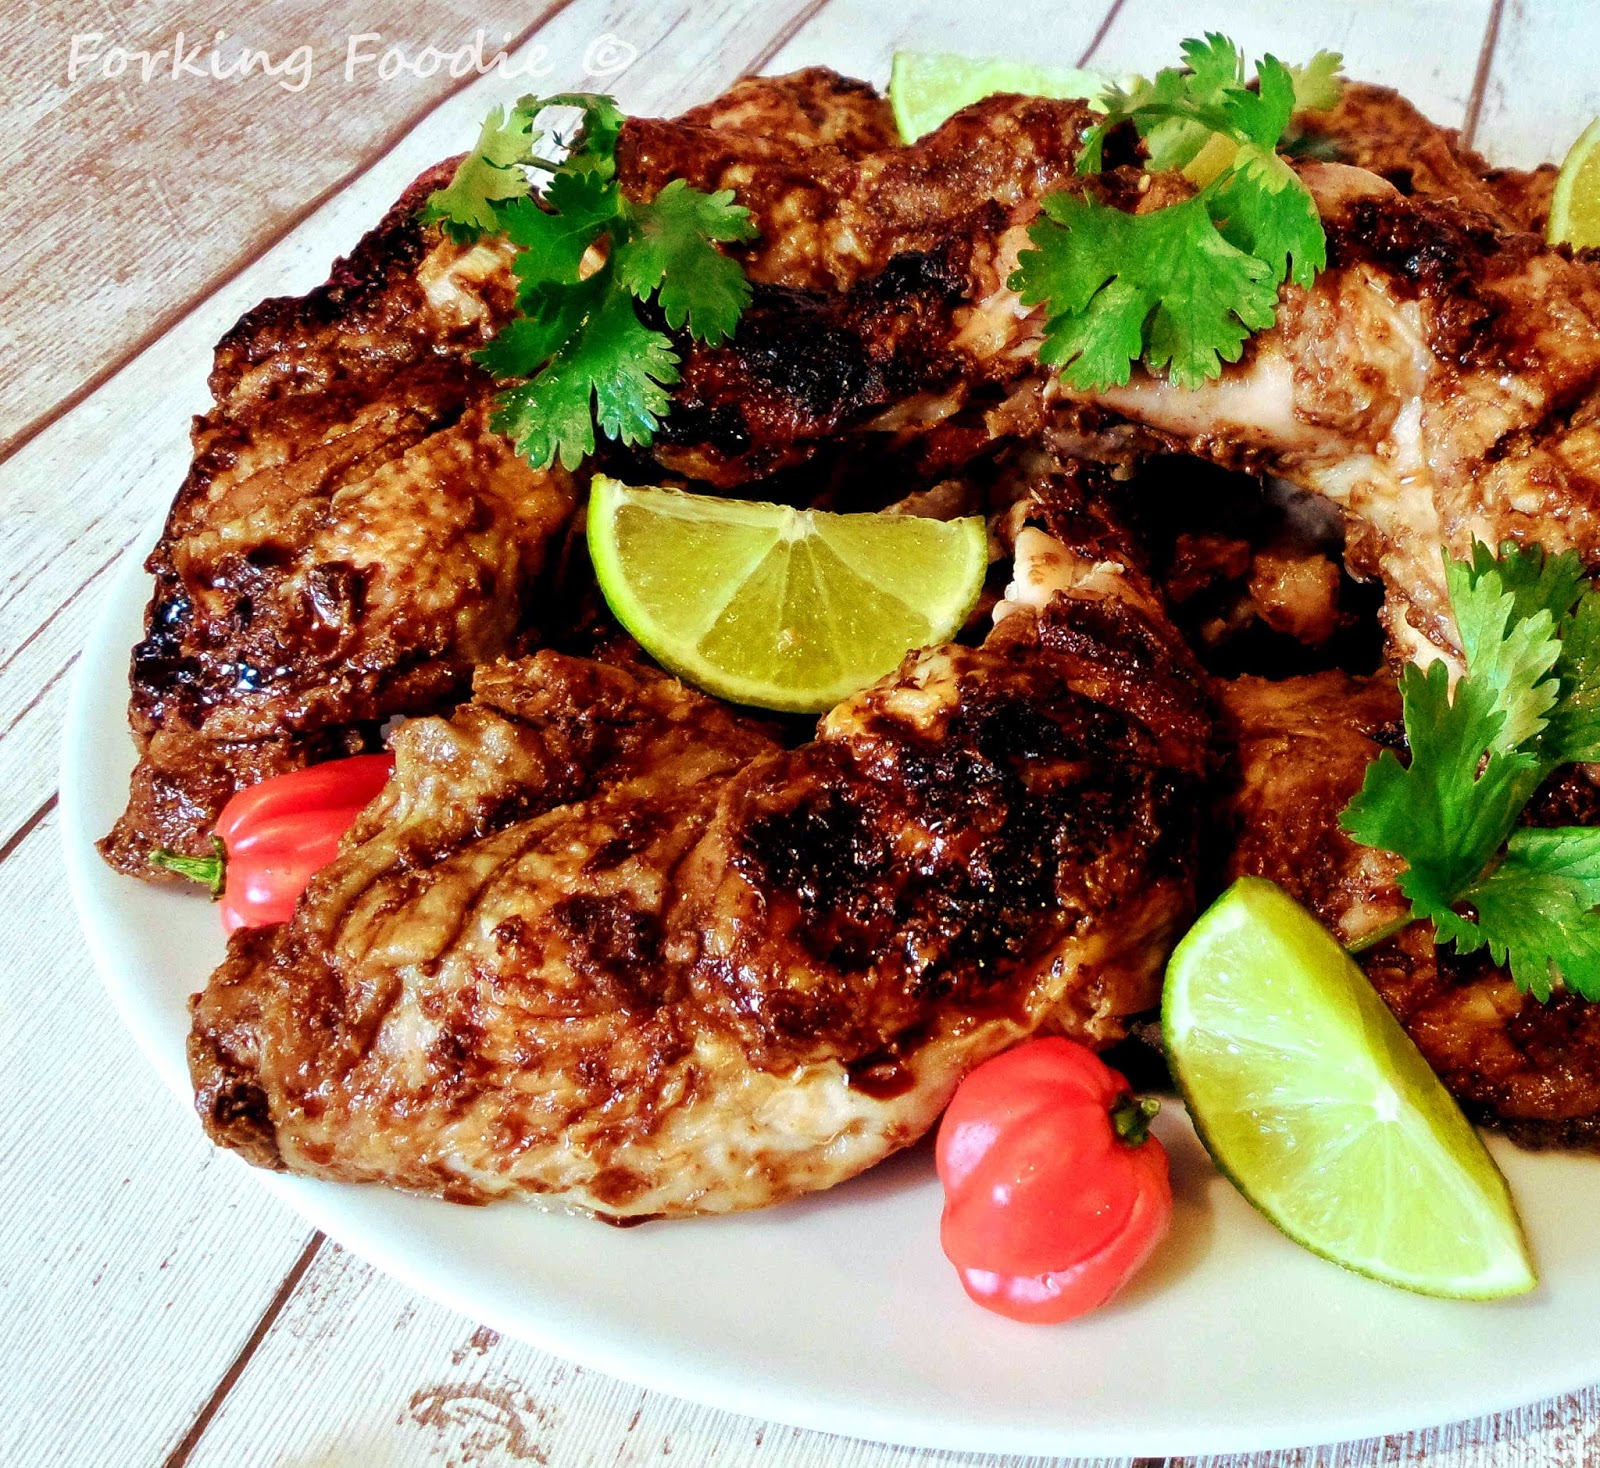 Forking Foodie: Jamaican Jerk Chicken (includes Thermomix ...